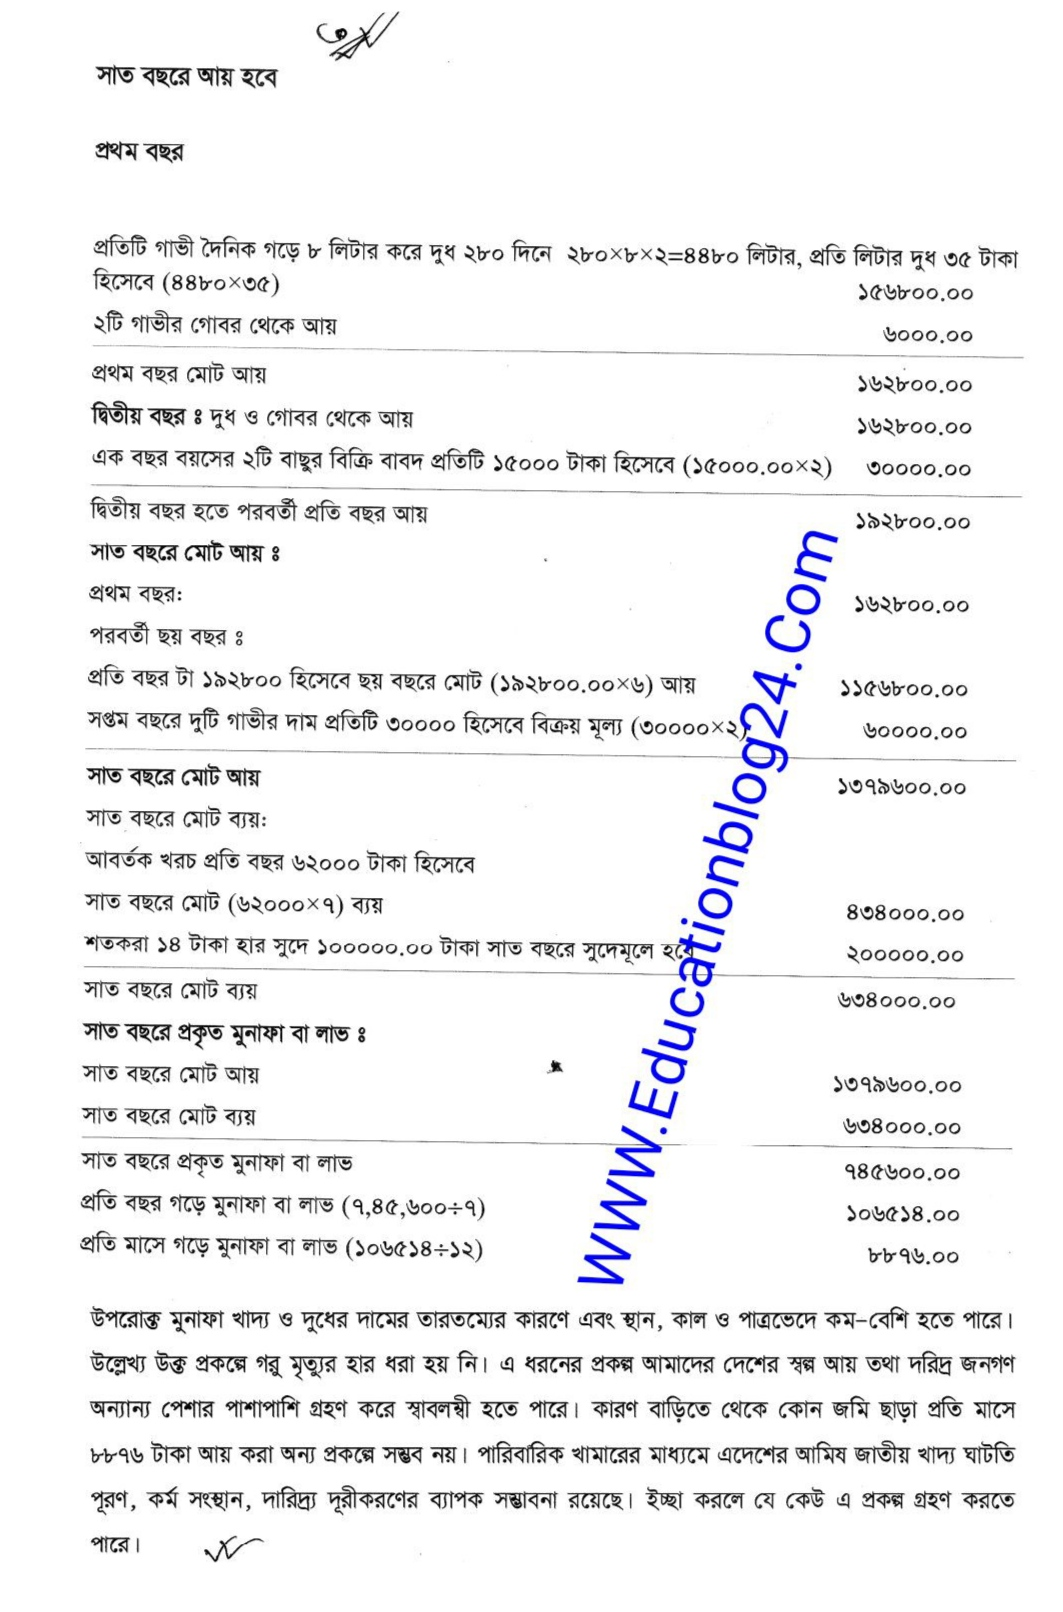 SSC / Dakhil (Vocational) Livestock Rearing and Farming Assignment Answer 2021 18